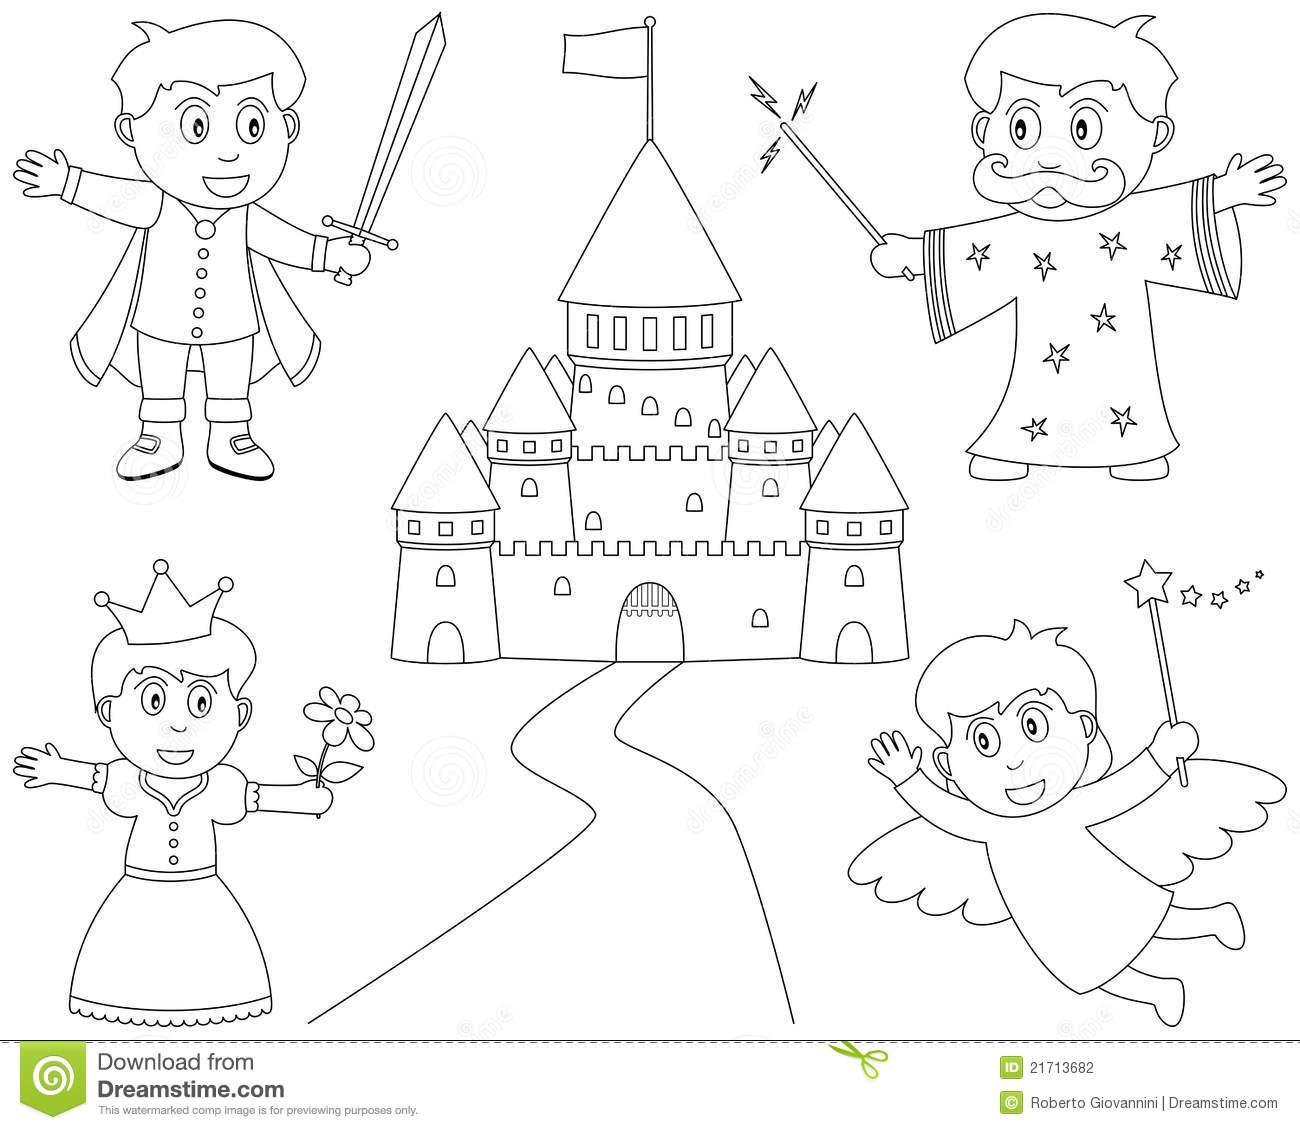 Coloring Fairy Tale Characters Stock Vector - Illustration ...